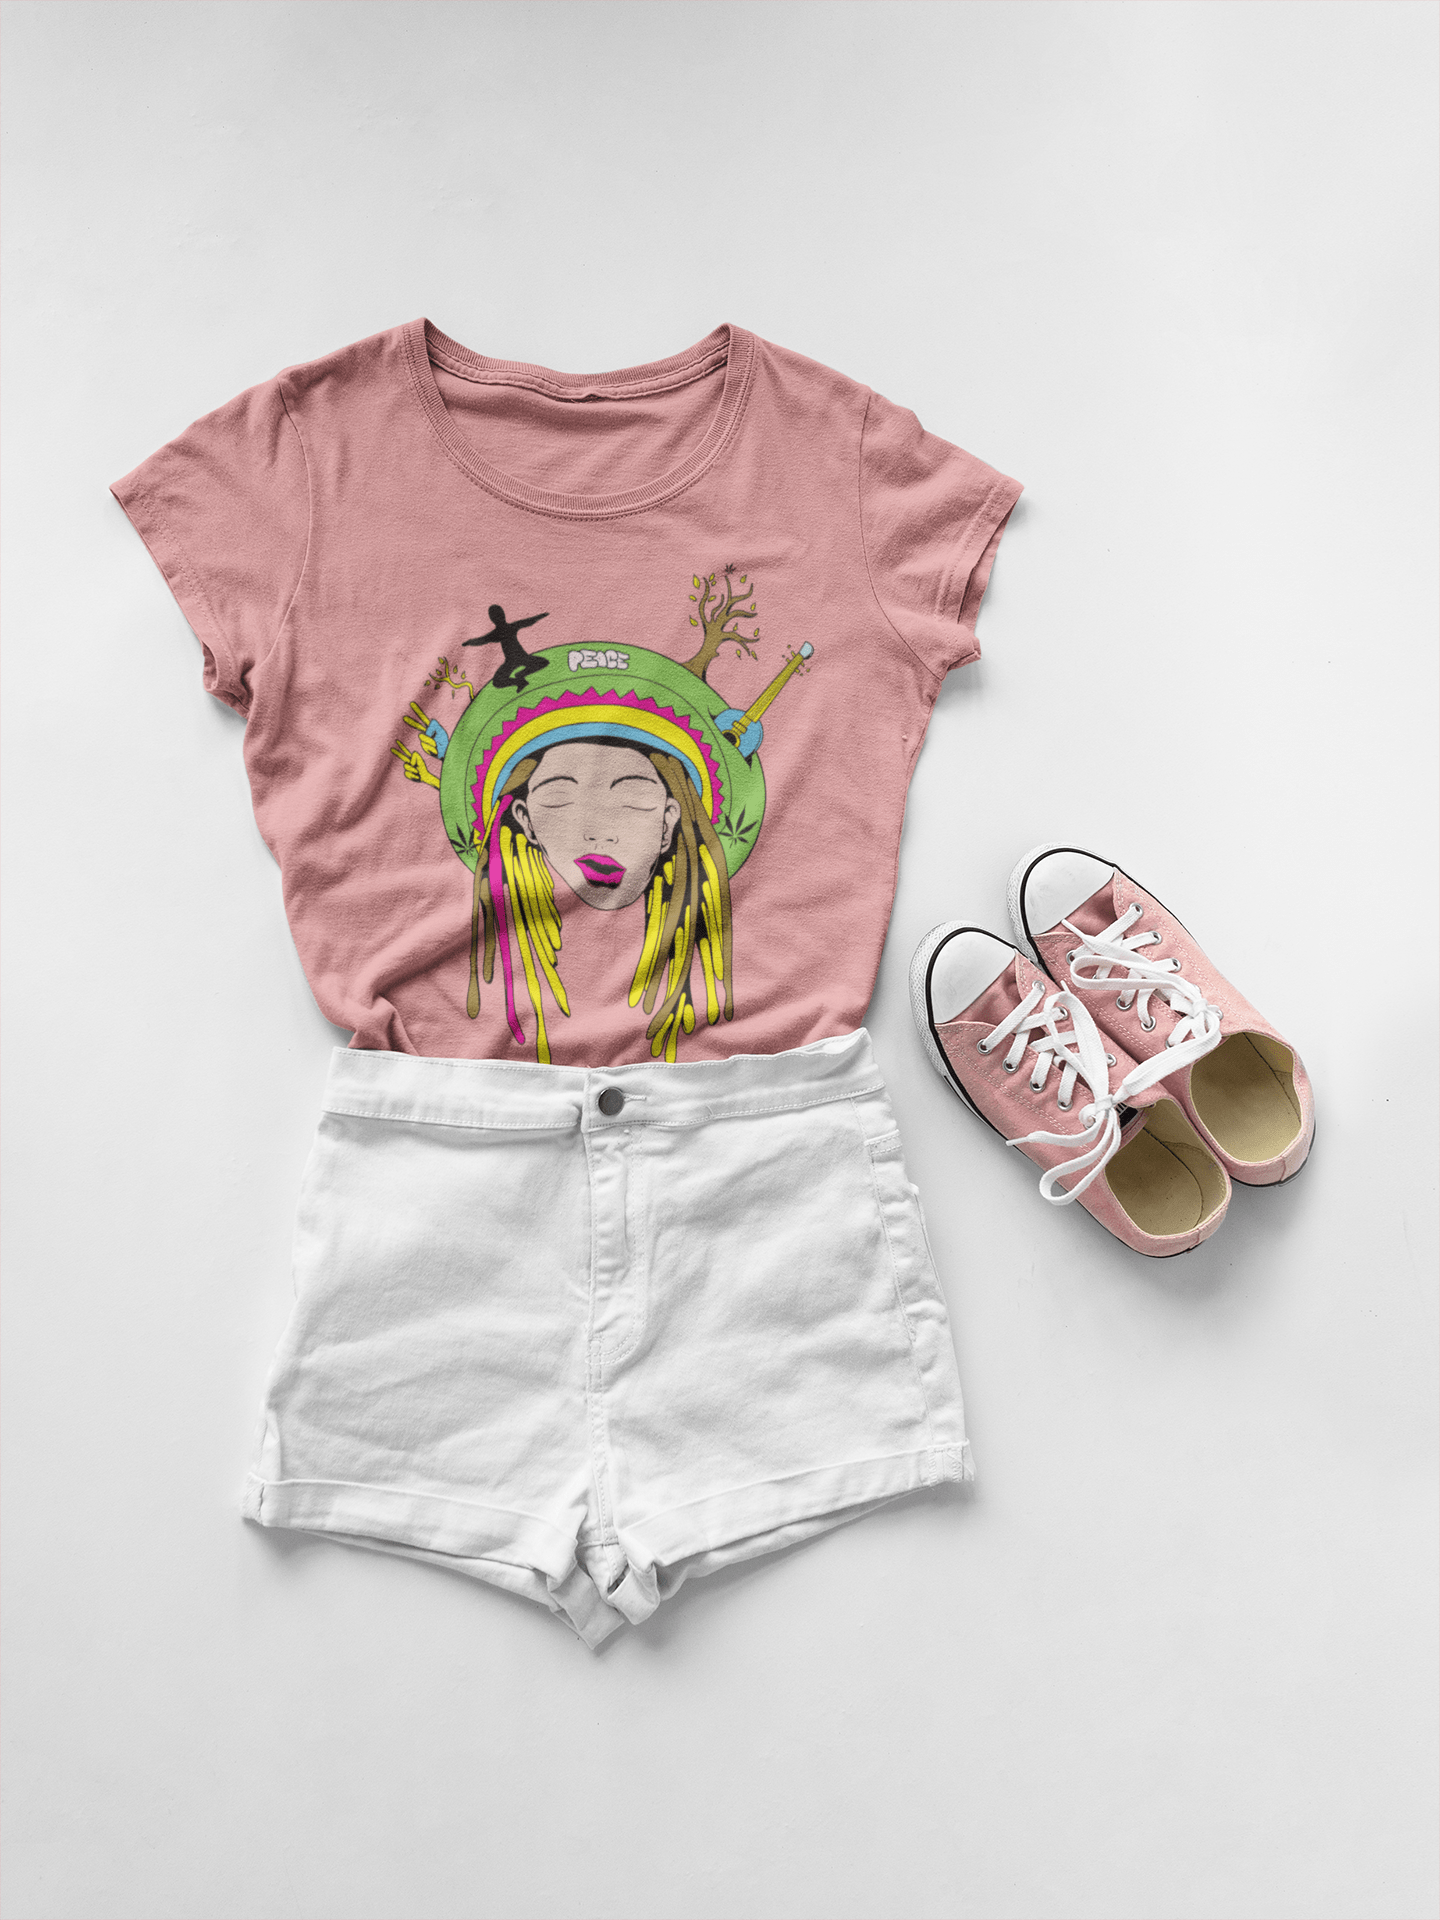 2018 Latest Trends in T-shirt Designs placeit 3 1